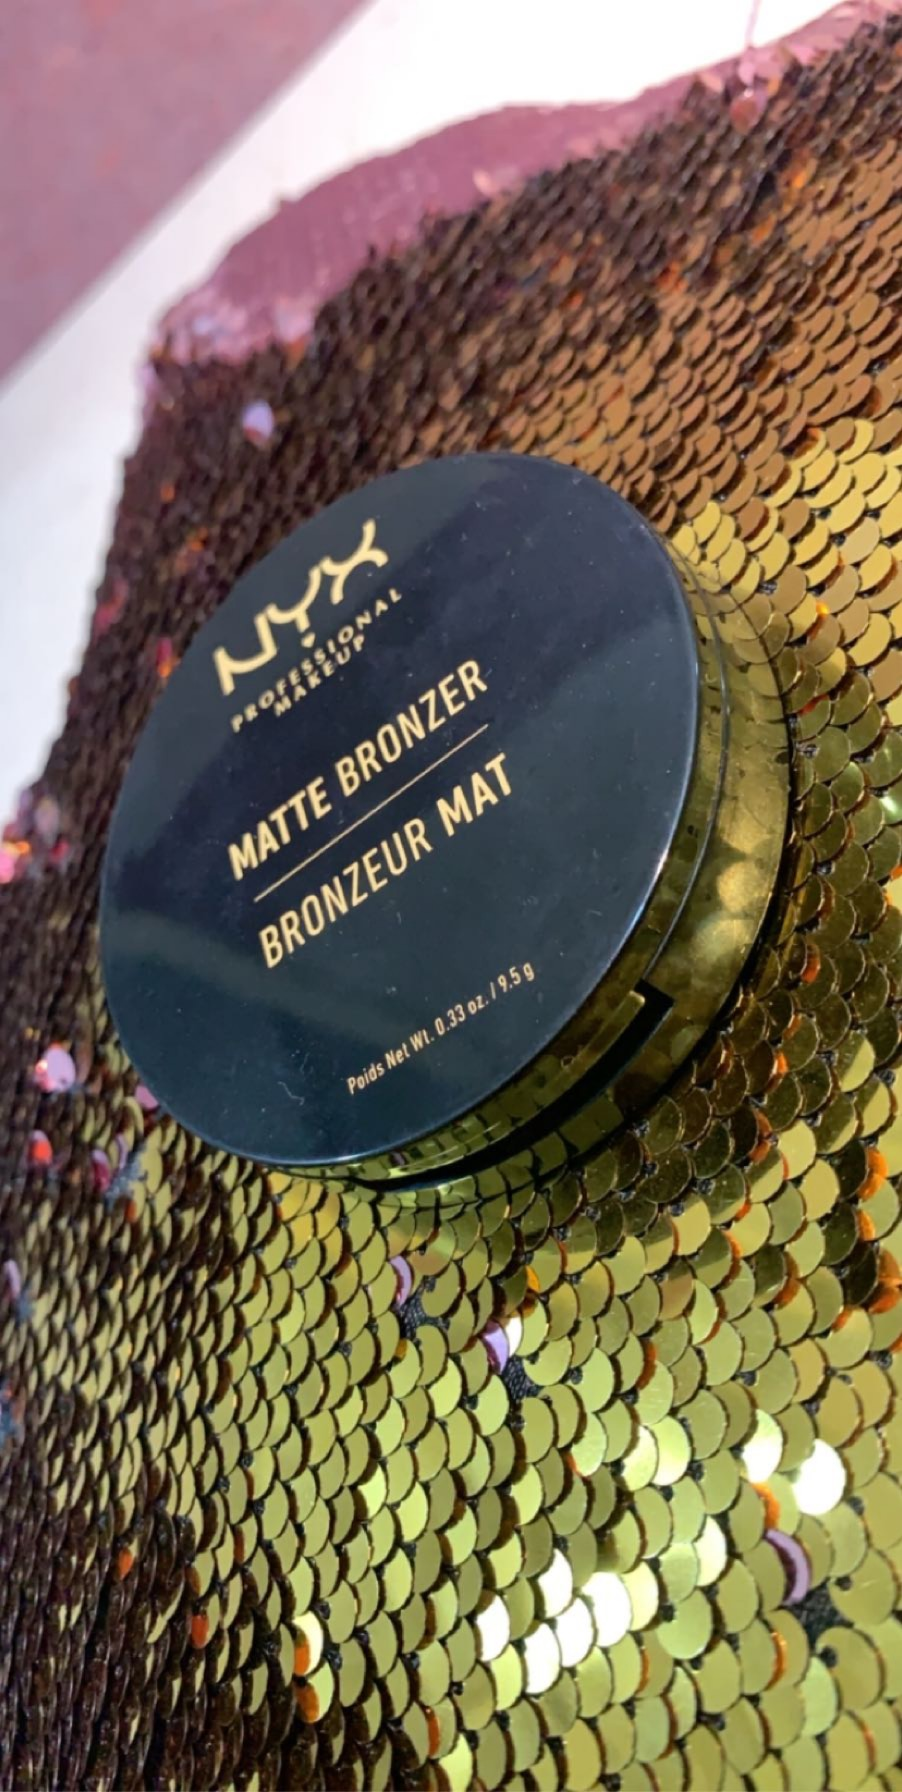 NYX Matte Bronzer pic 1-Perfect matte bronzer-By harshi_shahu